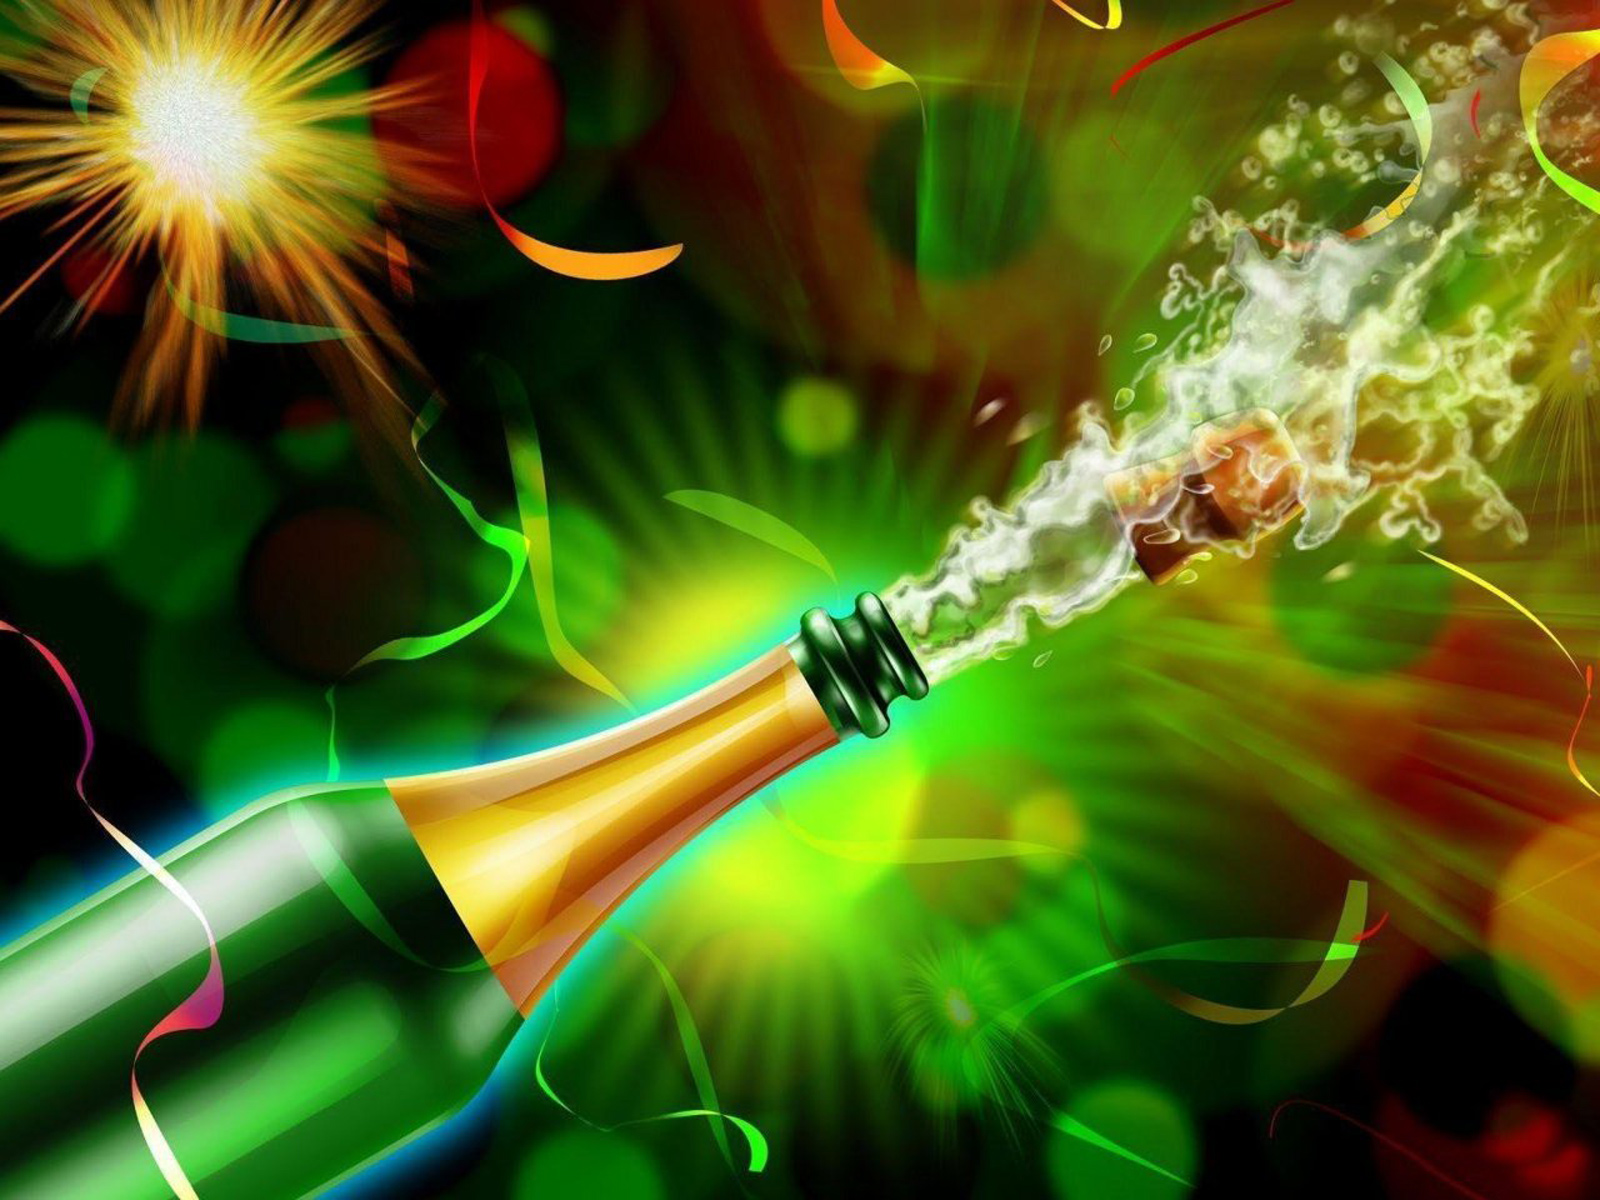 72+ New Years Eve Wallpaper on WallpaperSafari